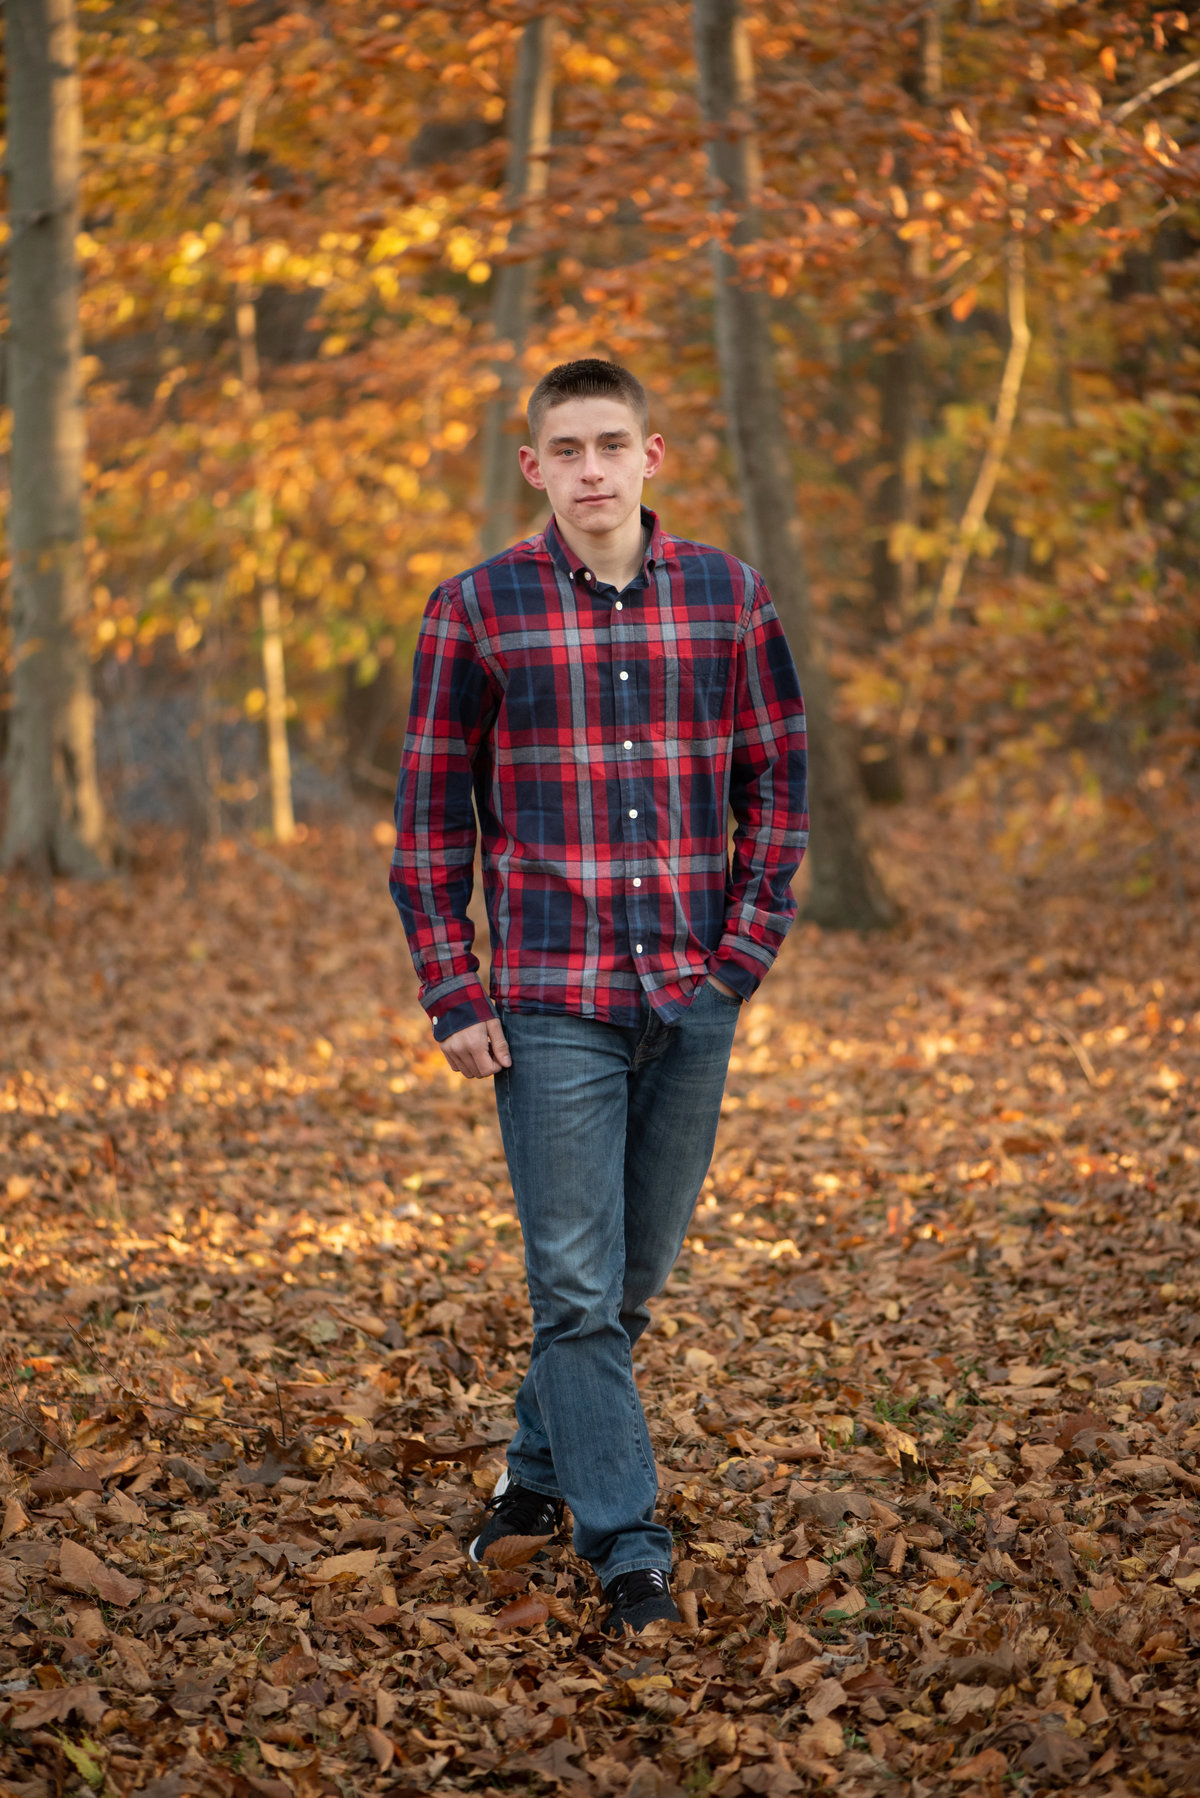 Senior guy in red & blue flannel walking in wood with fall foliage